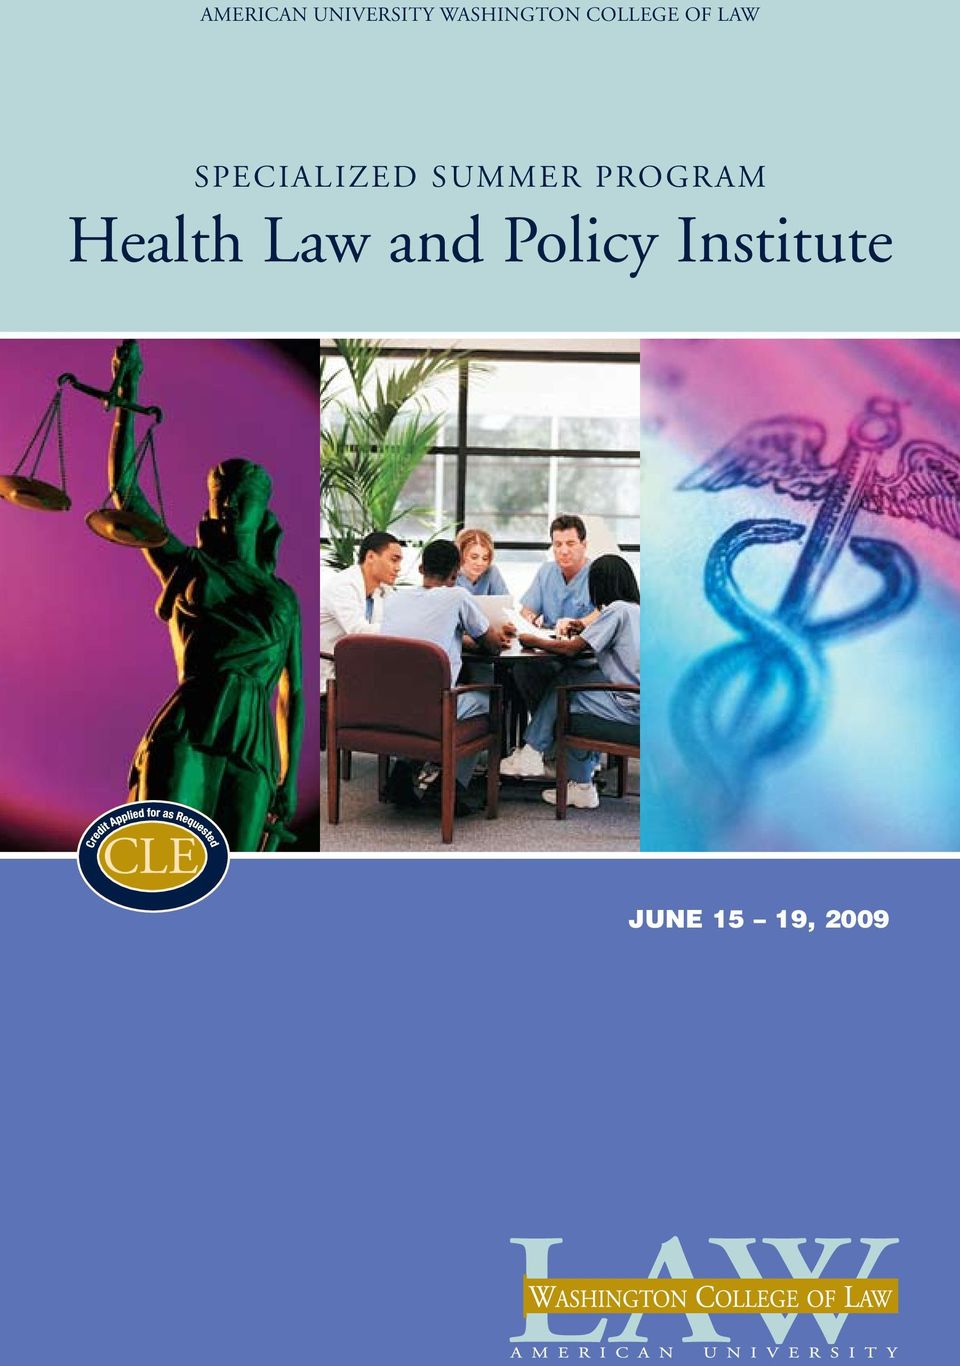 Summer Program Health Law and